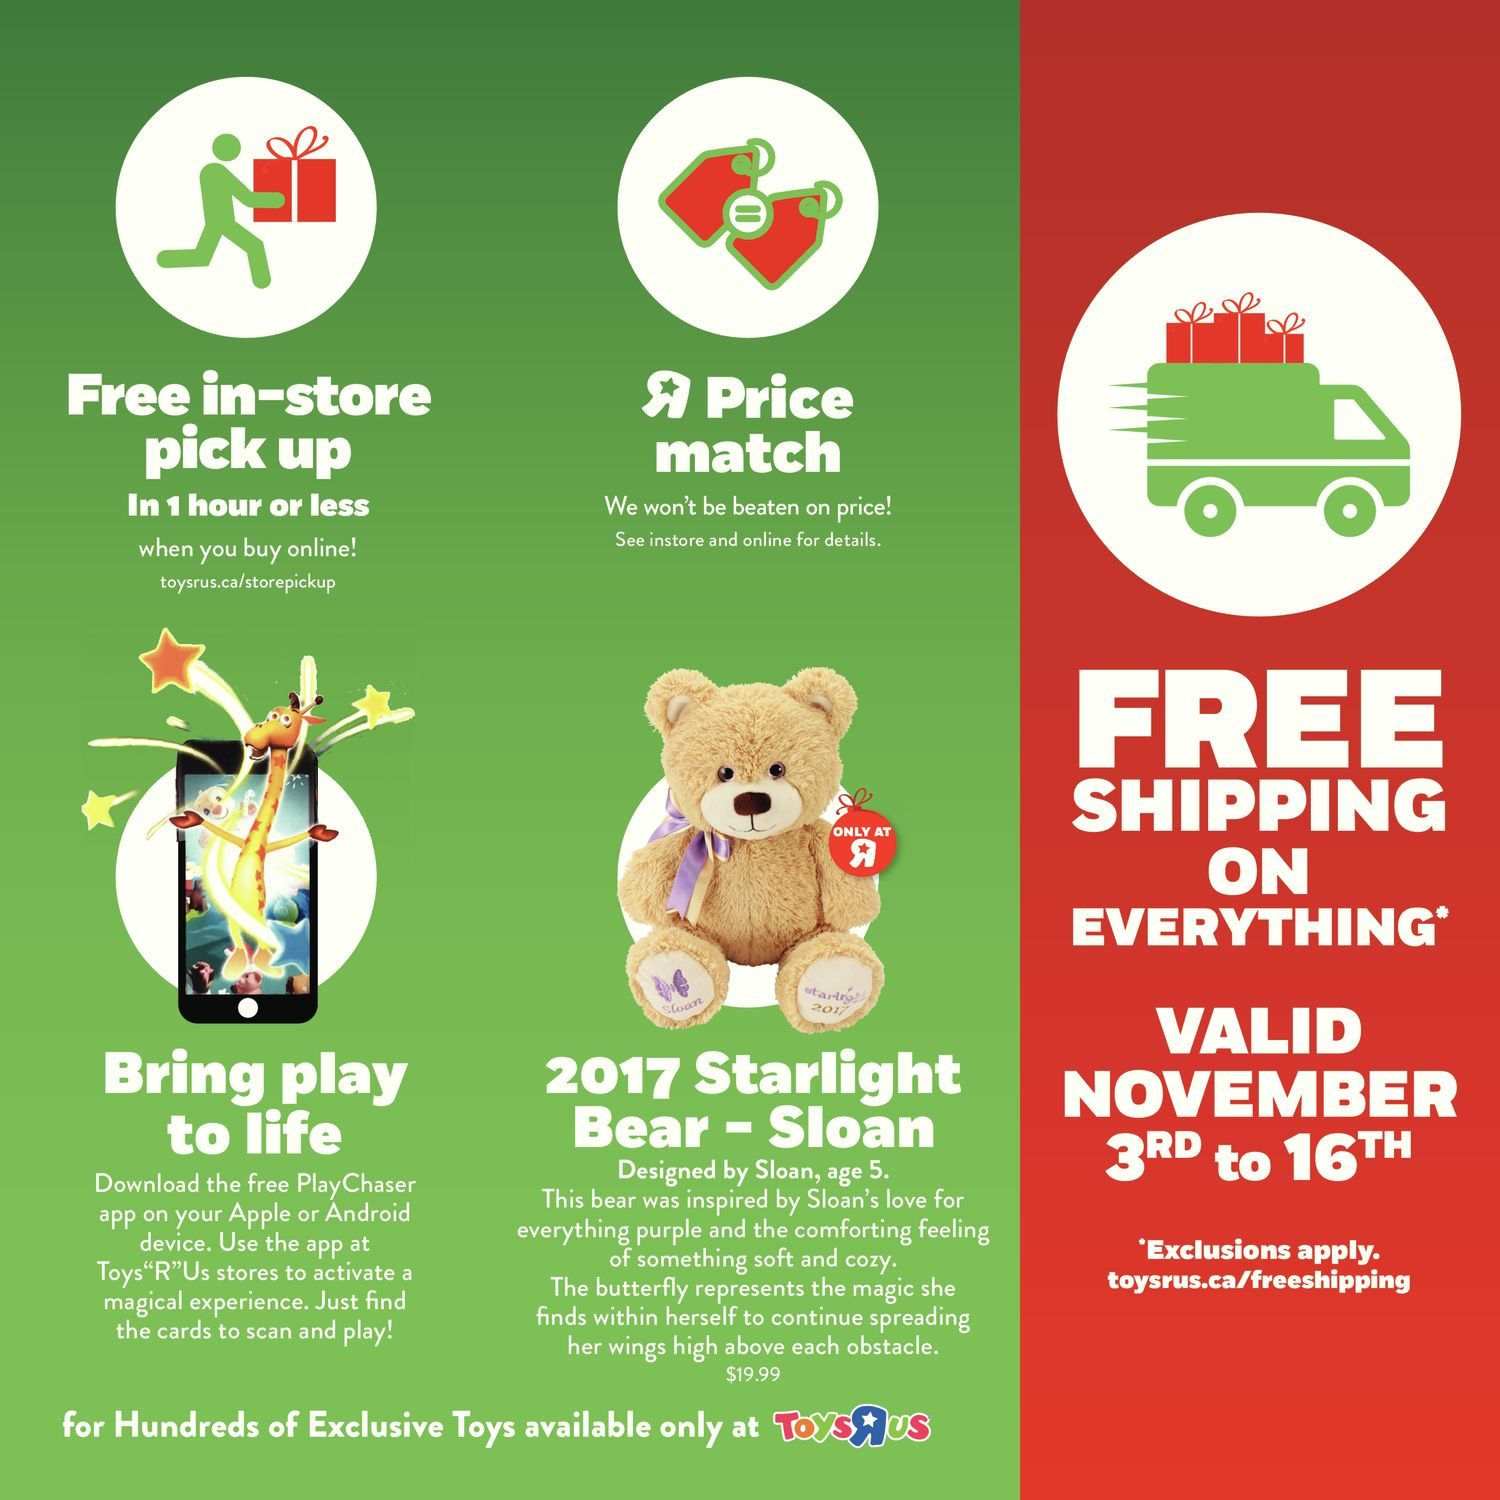 7c94290792 Toys R Us Weekly Flyer - 2017 Playbook - Nov 3 – 16 - RedFlagDeals.com